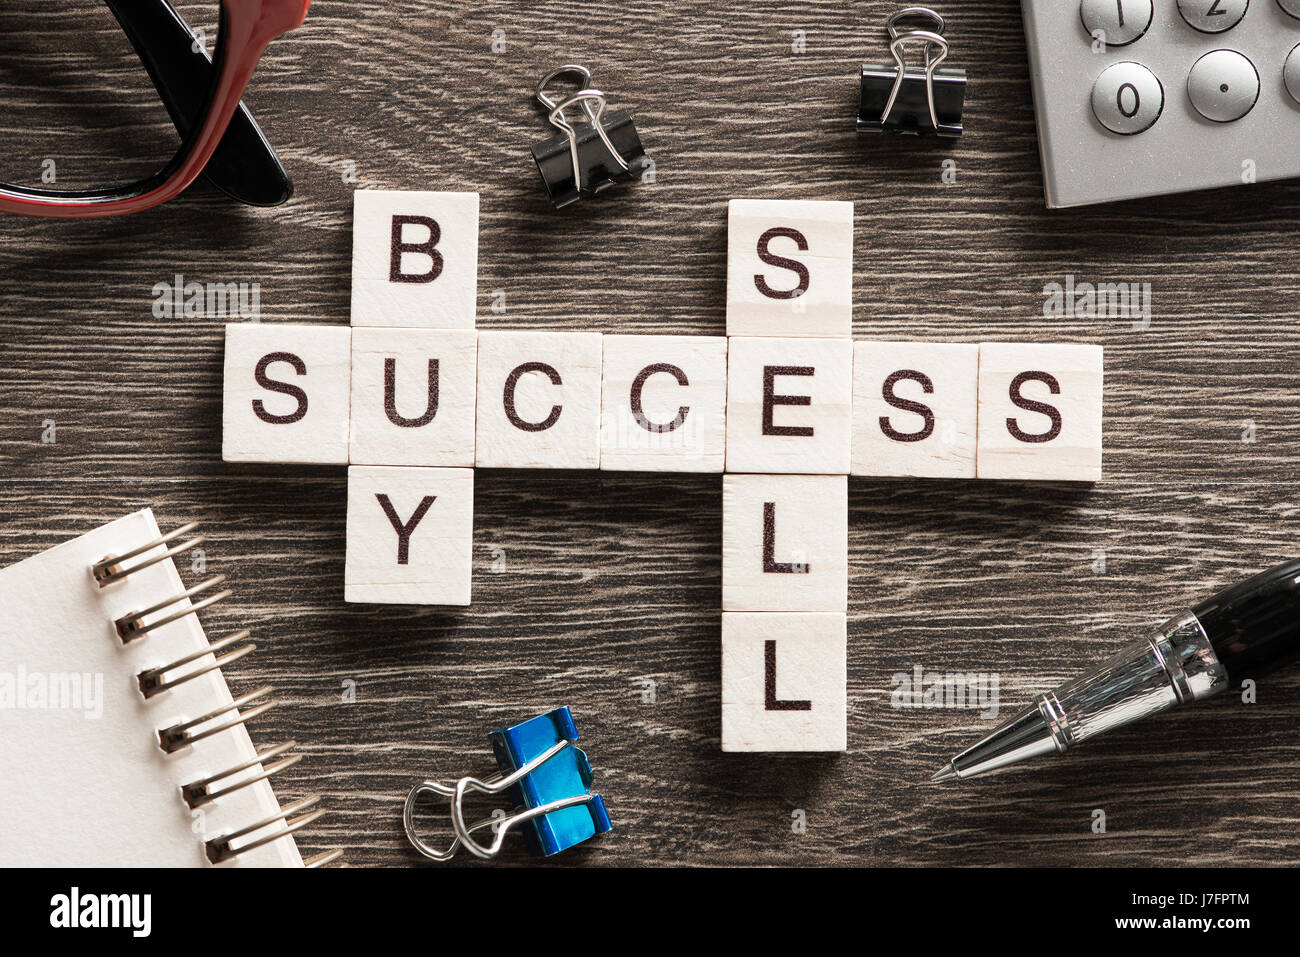 Buy sell success concepts collected in crossword on wooden table - Stock Image